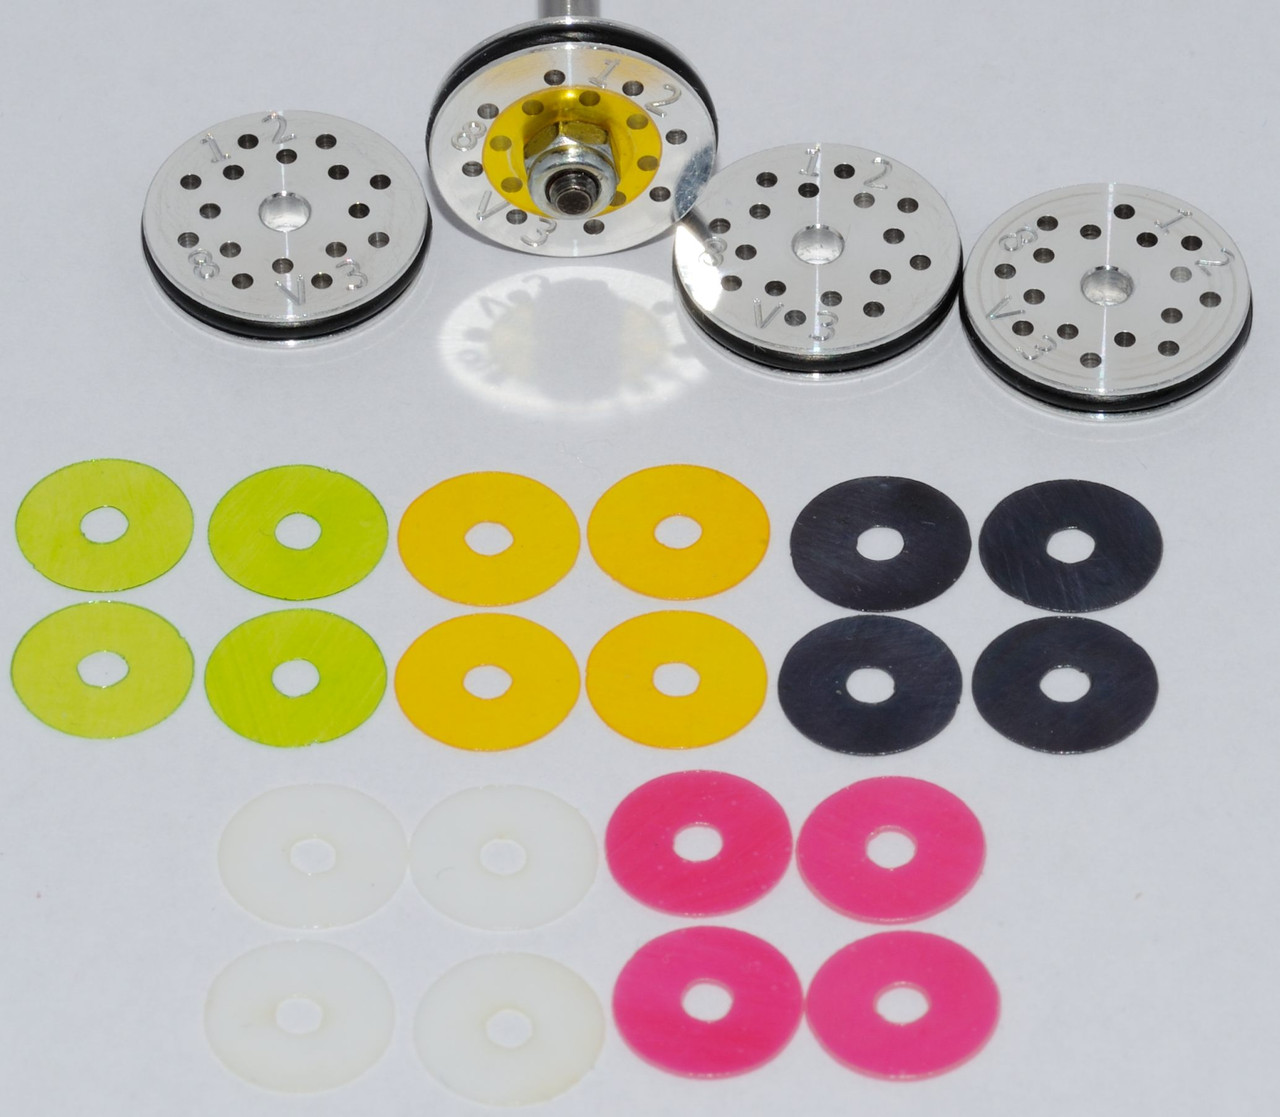 #1 RC Shock Rebound Valved Pistons 16mm, 8 hole, 1.2mm. Losi 8ight, HB, Serpent 2.0